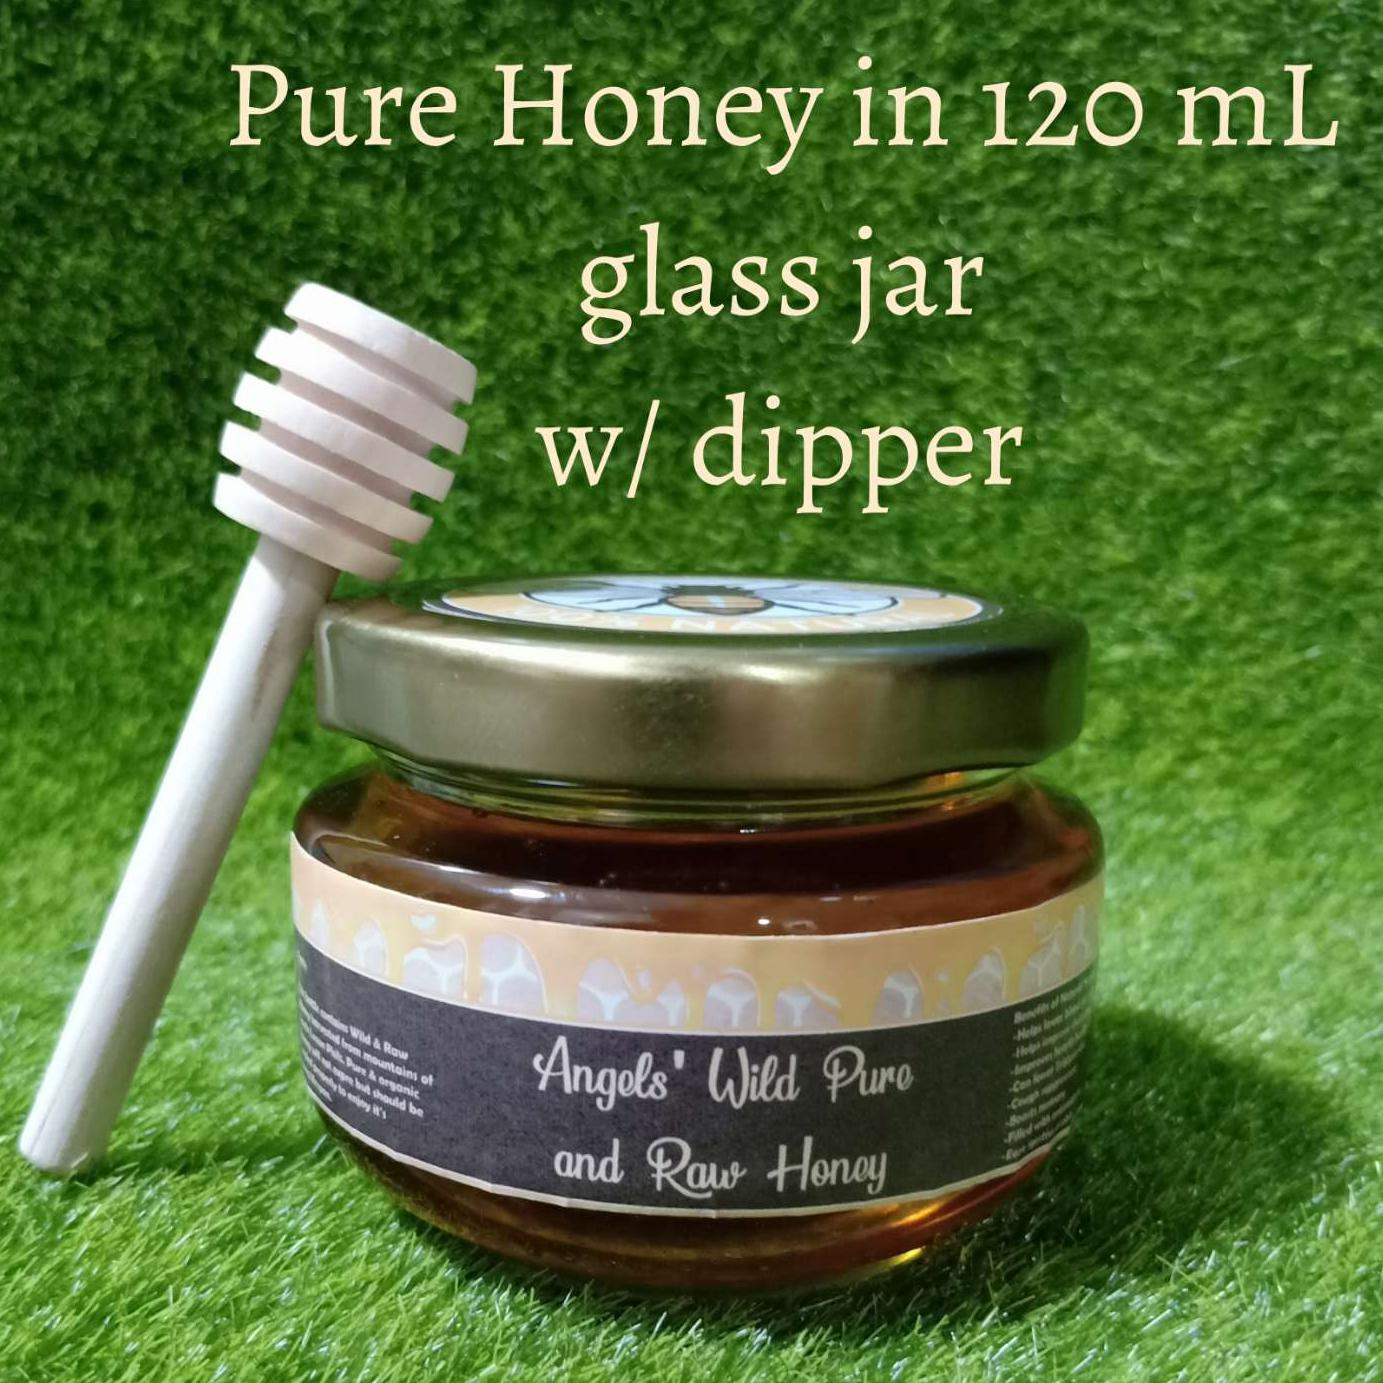 Honey Pure Raw Wild 120ml In Glass Jar With Dipper By Our Little Angels Stuff.